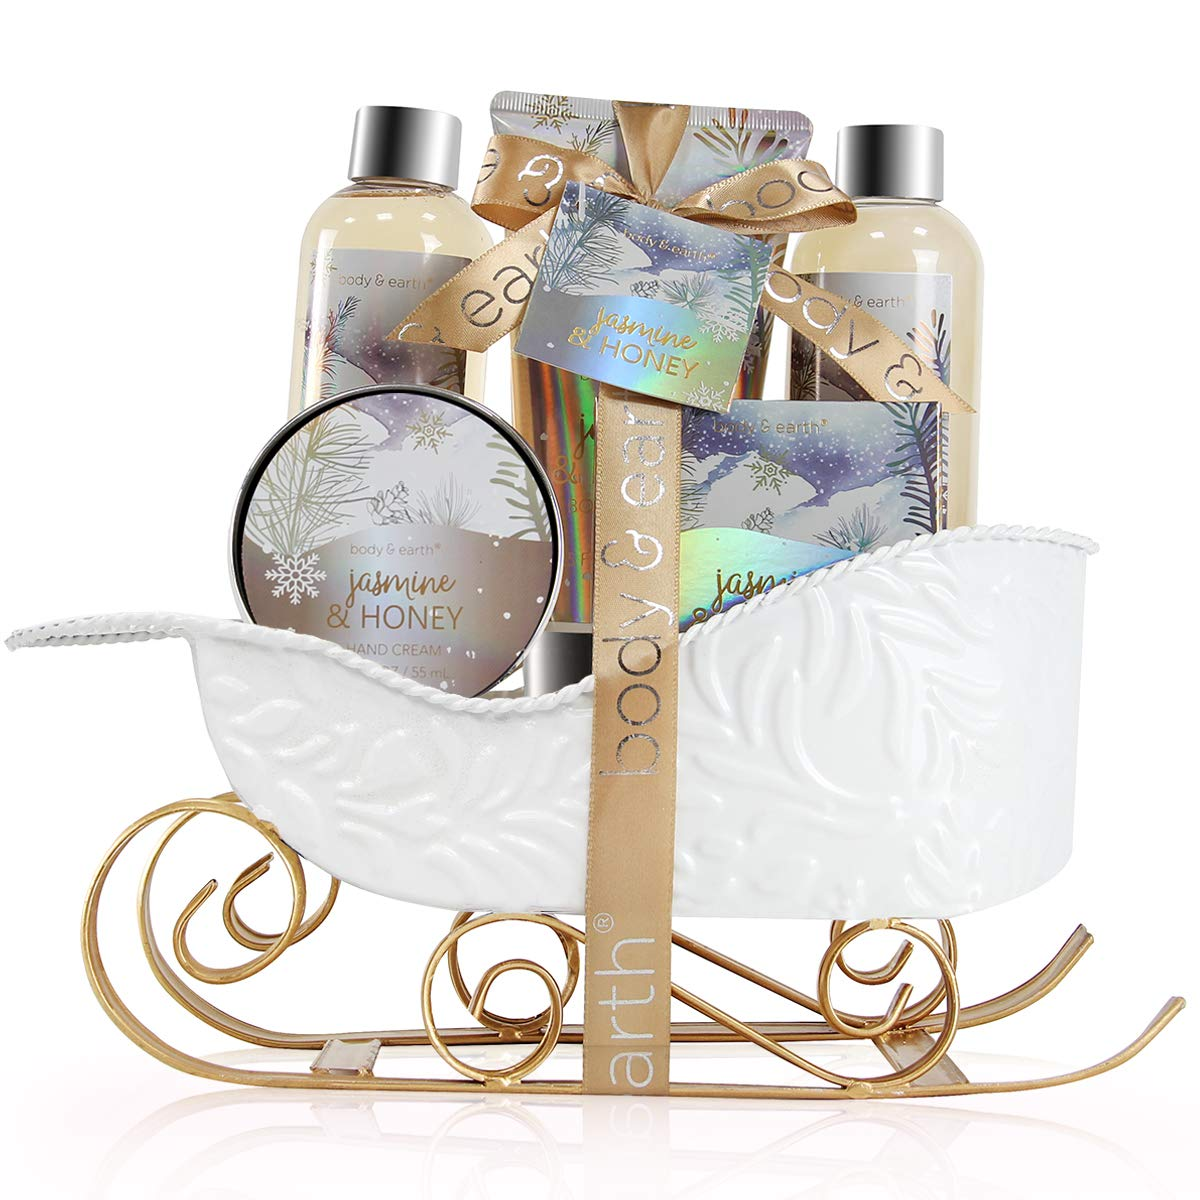 Body & Earth Women Gifts Spa Set with Jasmine & Honey Scent for $9.99 Shipped! (Reg.Price $19.99)